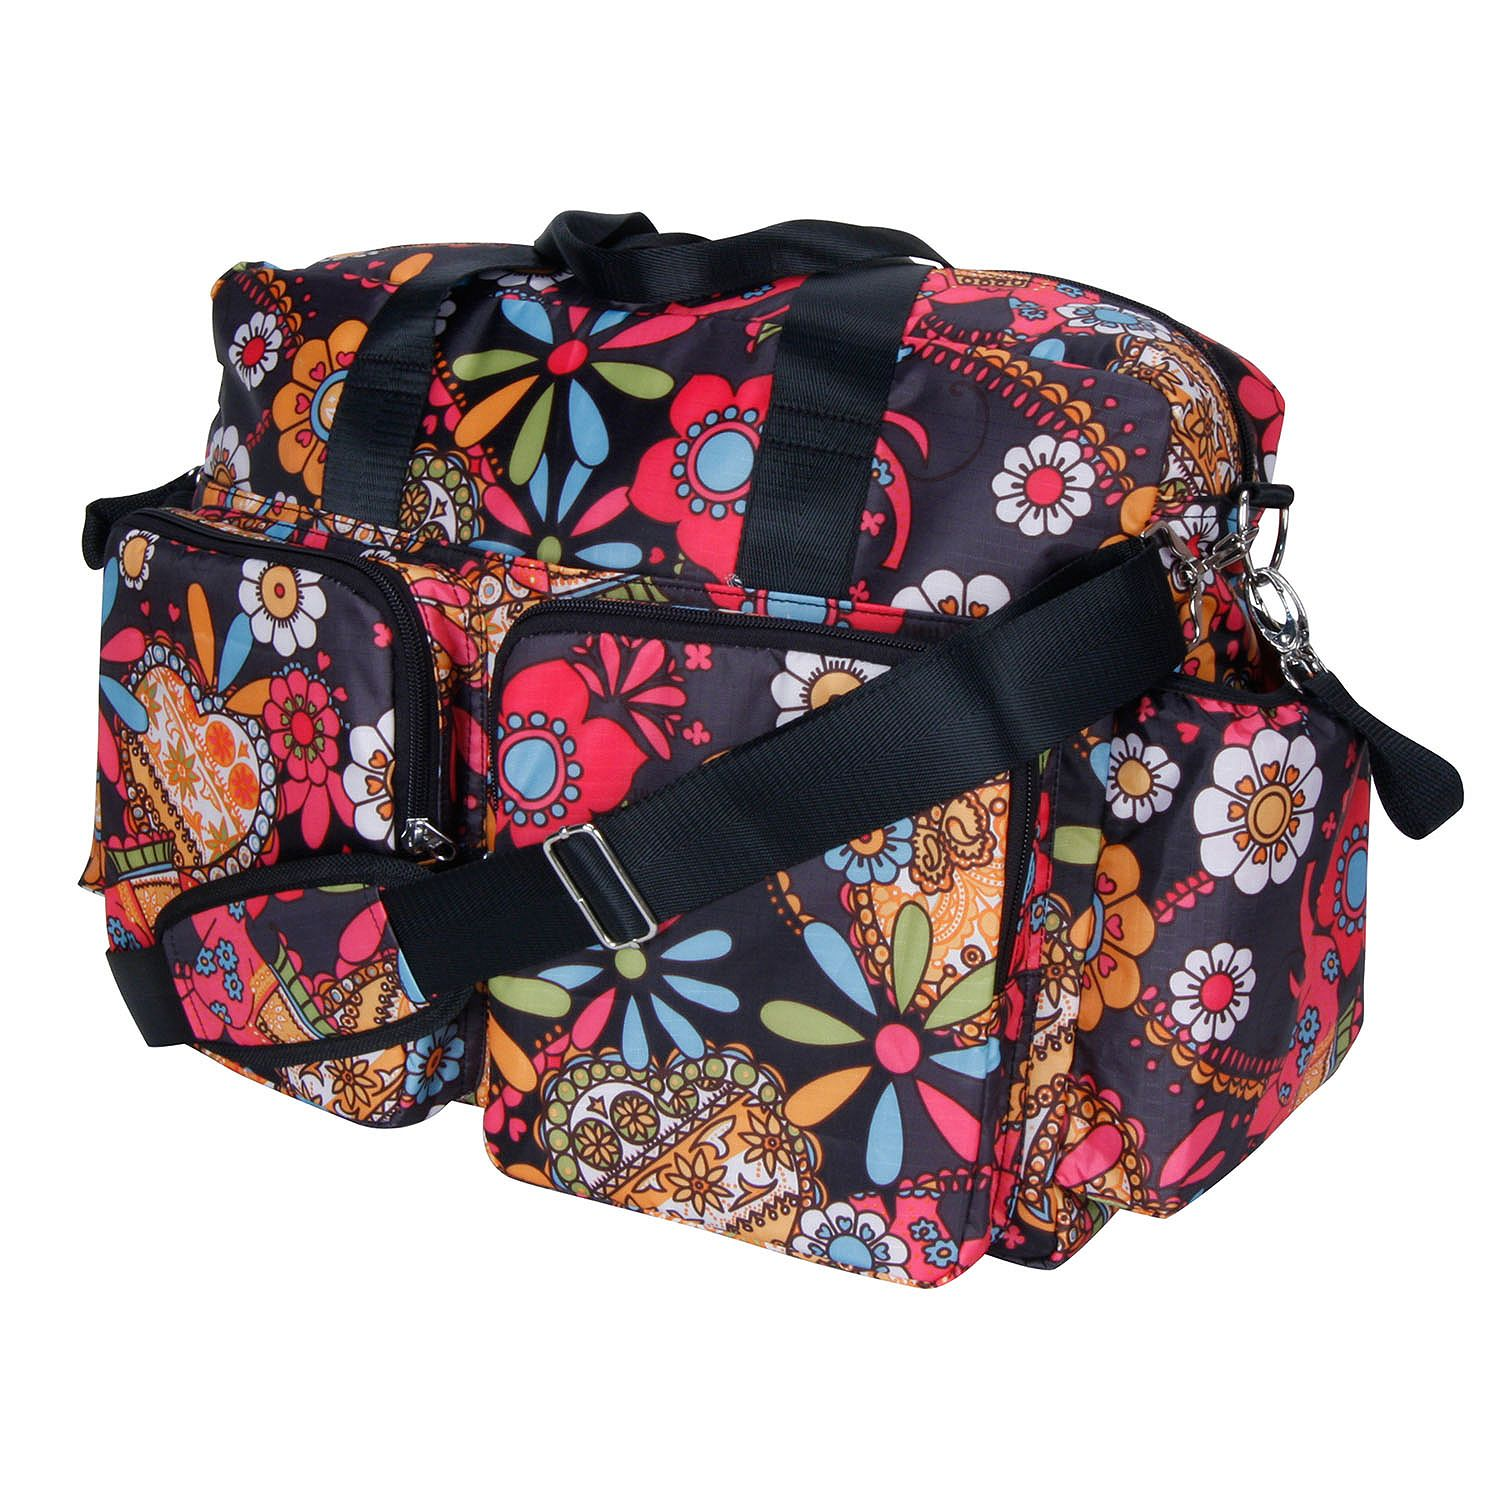 A Product of Trend Lab Deluxe Duffle Diaper Bag, Bohemian Floral [Skin Soft, Comfortable and Good Sleep Diapers](Babys Best Choice)